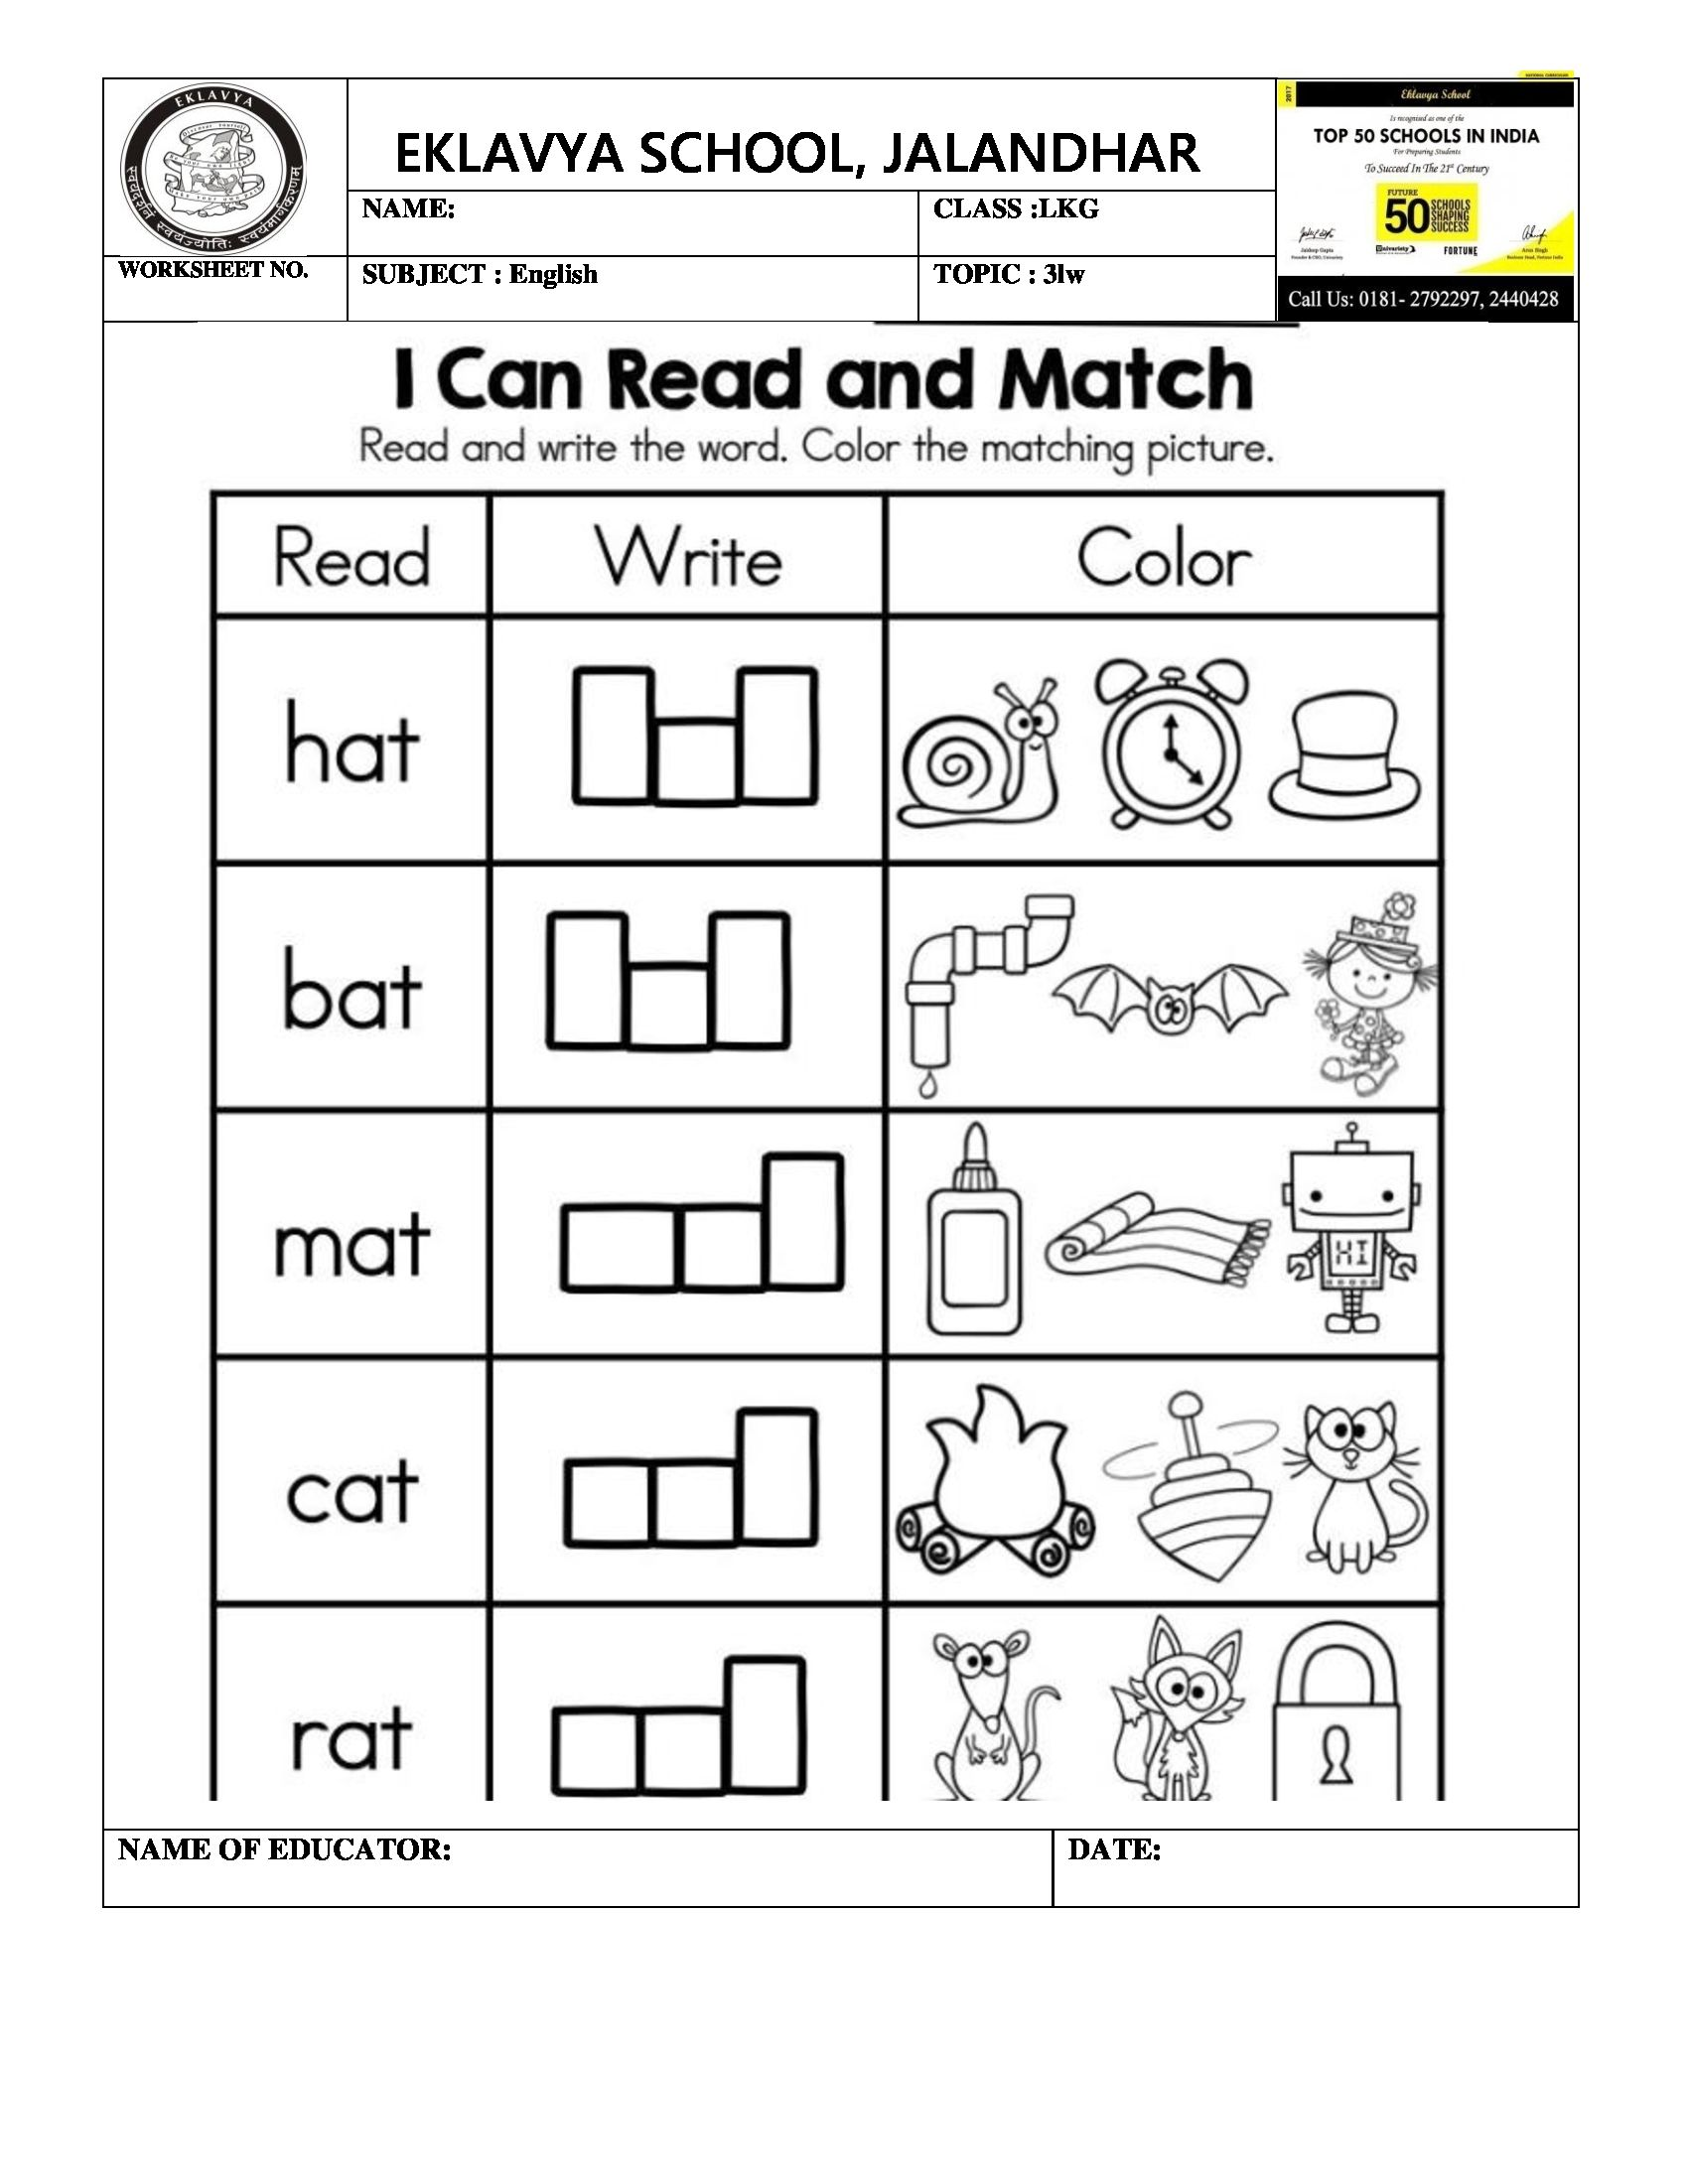 Worksheet On Three Letter Words